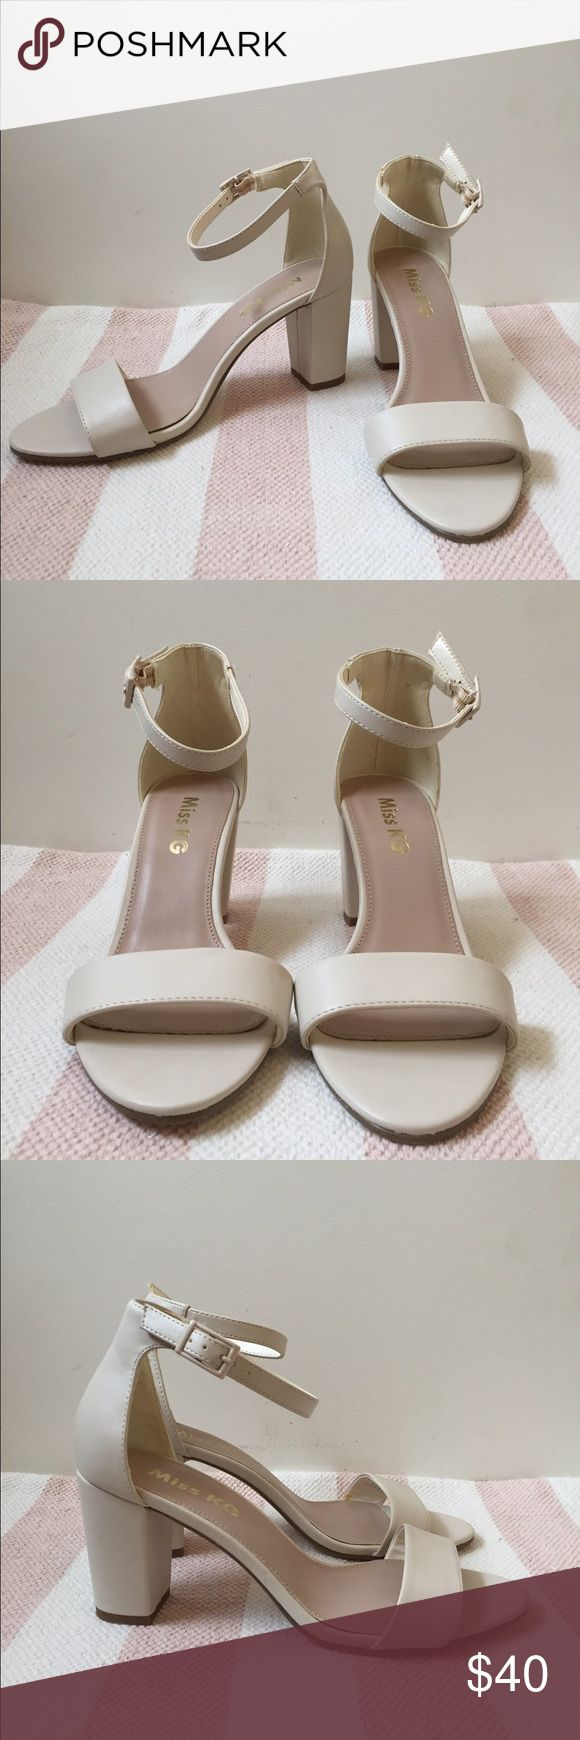 """Miss KG Paige White Heeled Sandals Cute off white 3"""" heels with skinny ankle strap from ASOS. Never worn. Vegan leather. Miss KG Shoes Heels"""